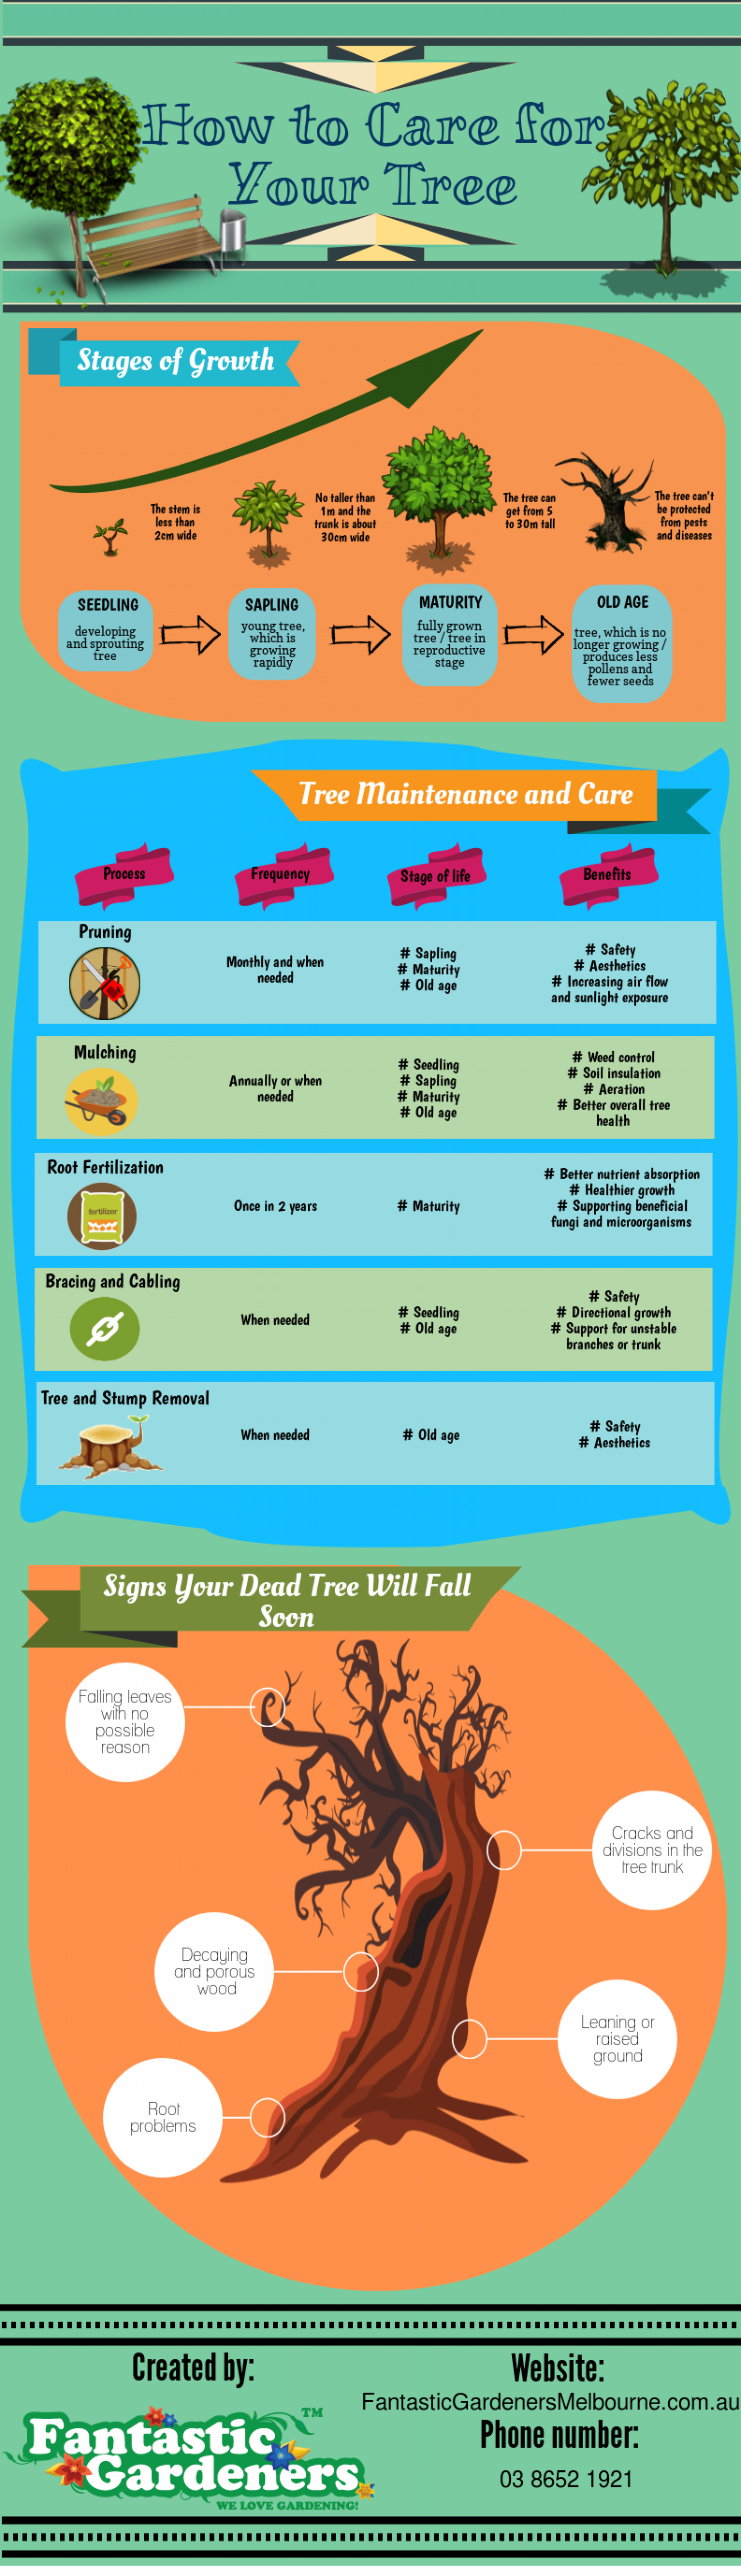 How to Care for Your Tree Infographic